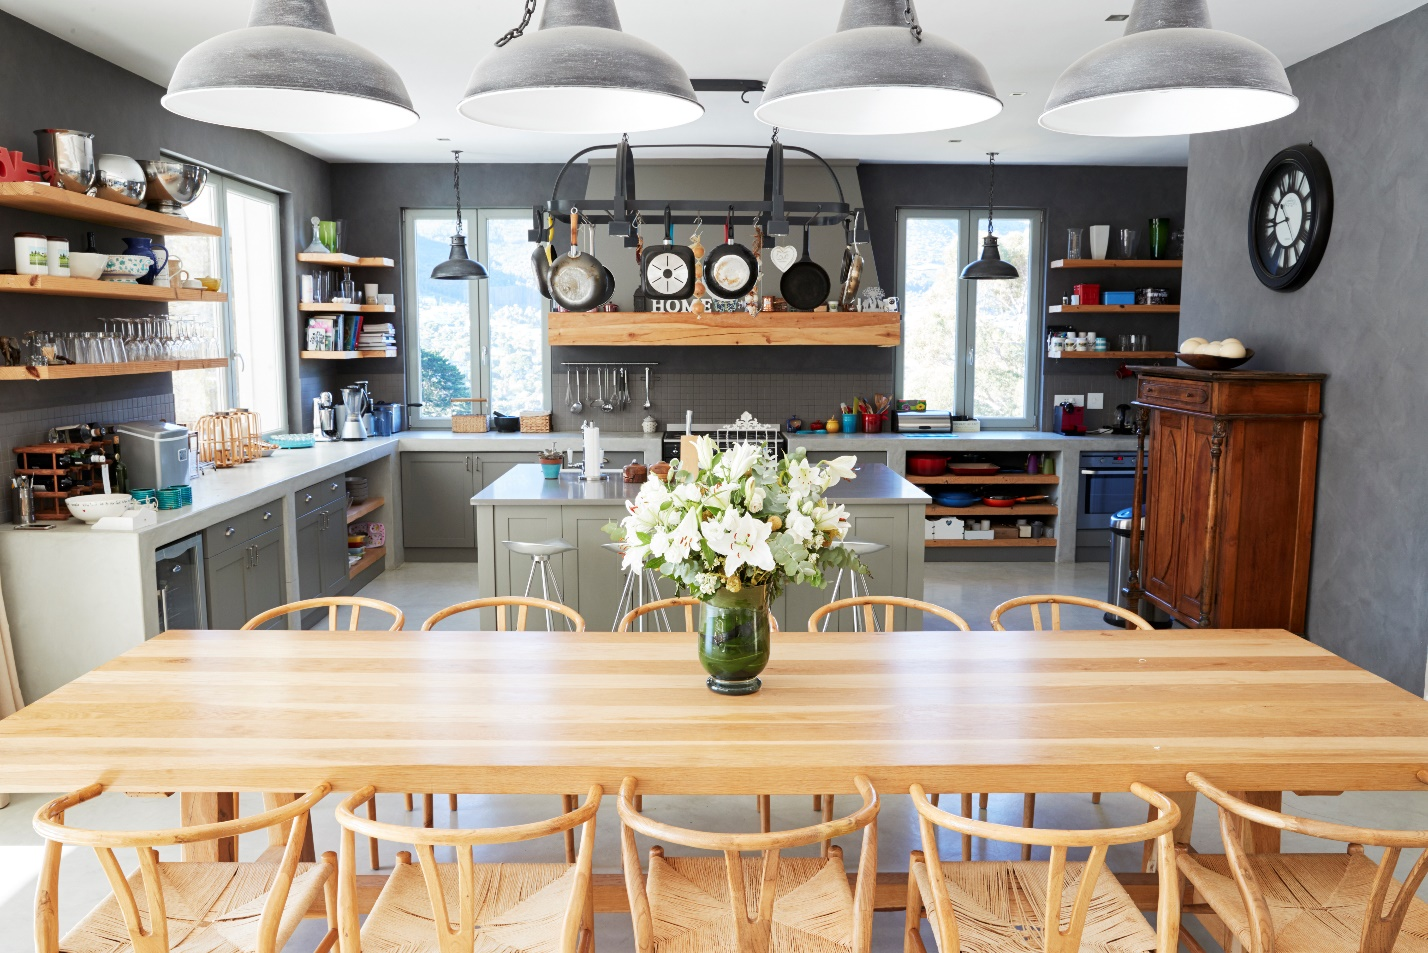 5 Awesome Kitchen Design Trends for 2020